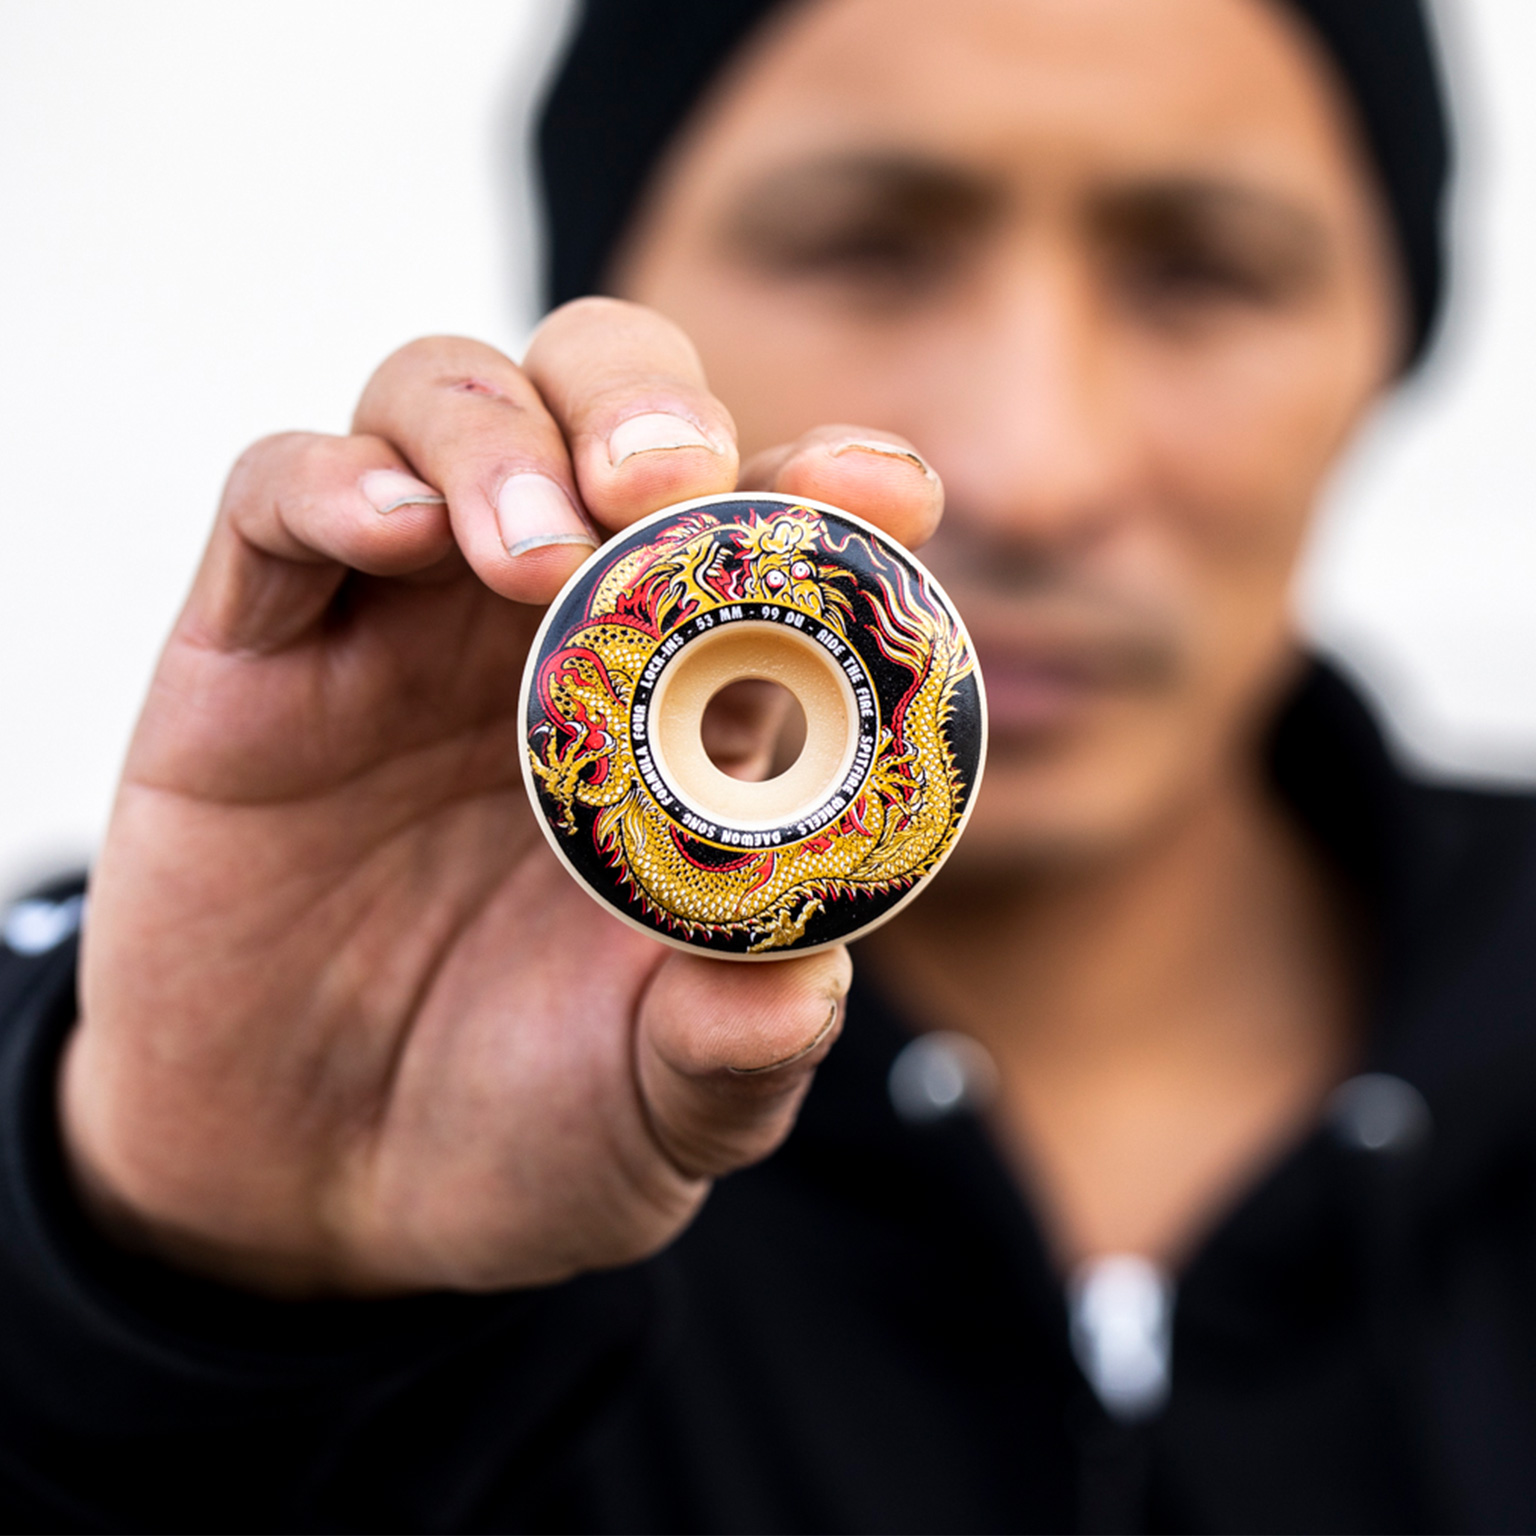 Daewon Song Spitfire Wheels.jpg